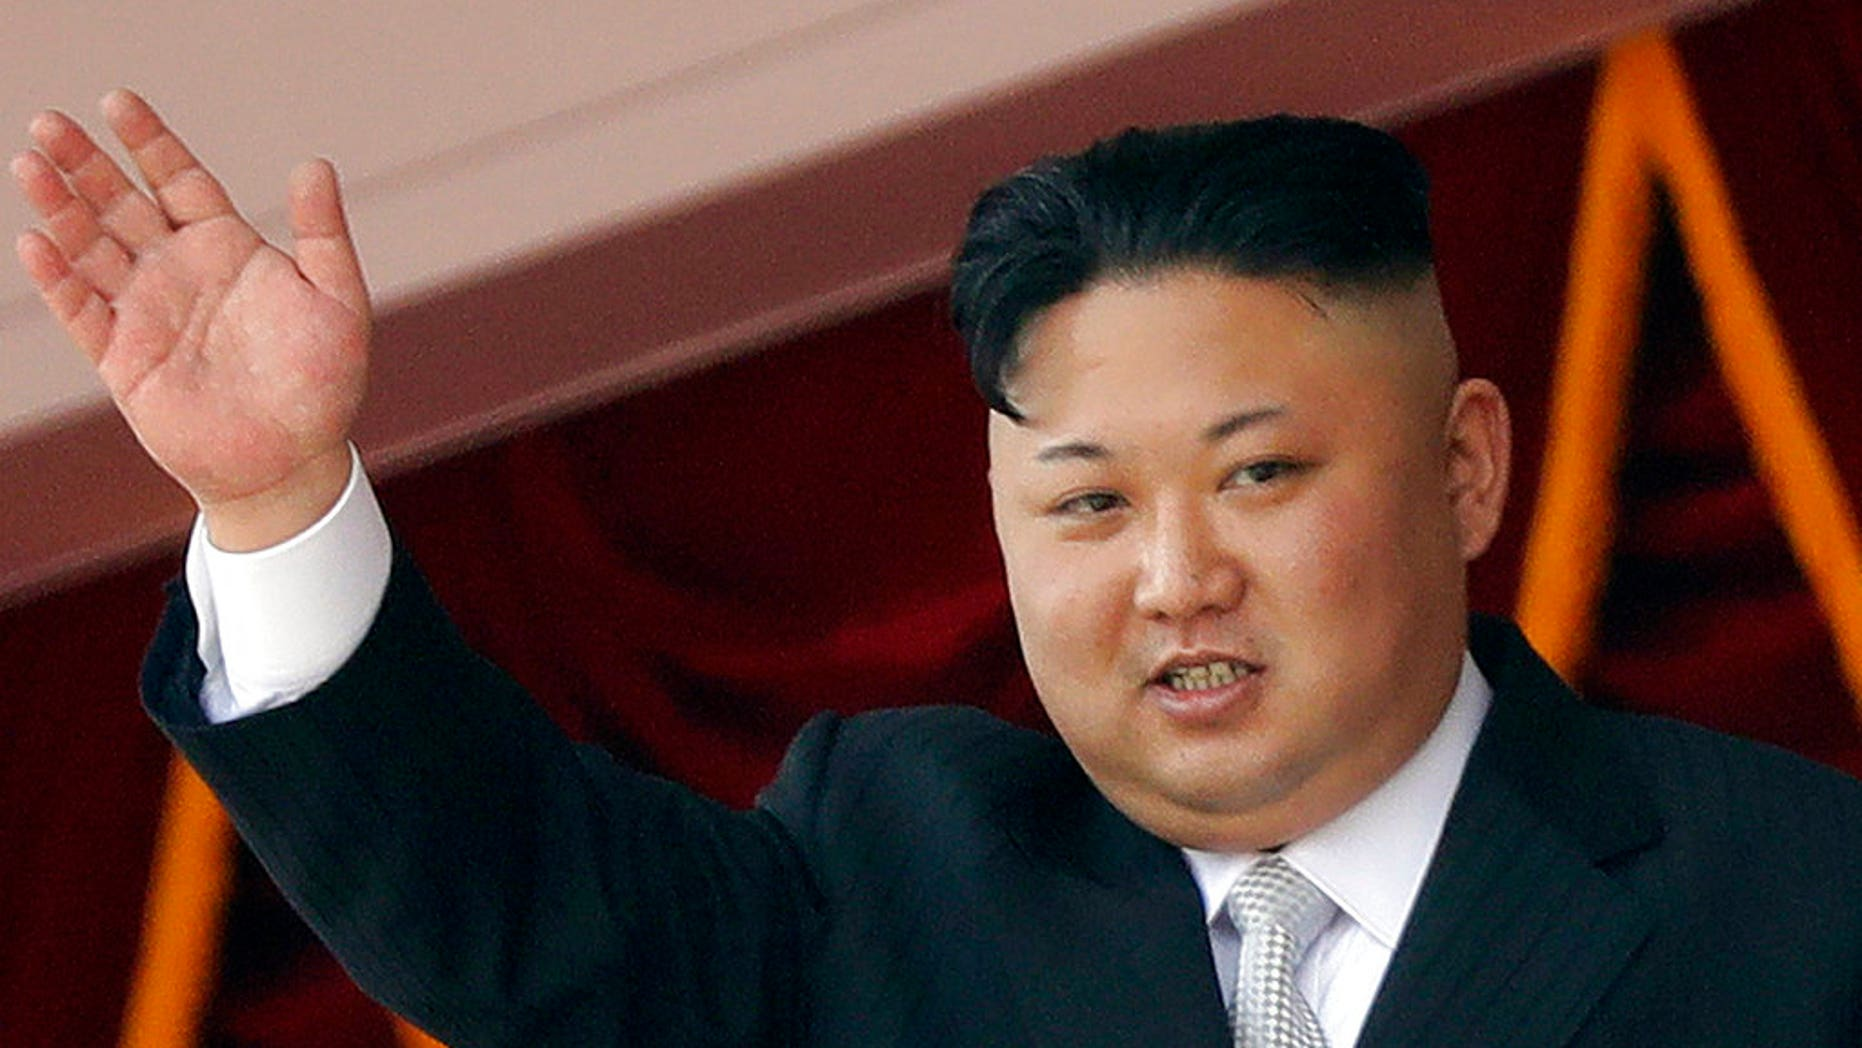 In this April 15, 2017, file photo, North Korean leader Kim Jong Un waves during a military parade in Pyongyang, North Korea. South Korea's military said Friday, Sept. 15, 2017 North Korea fired an unidentified missile from its capital Pyongyang that flew over Japan before landing in the northern Pacific Ocean.